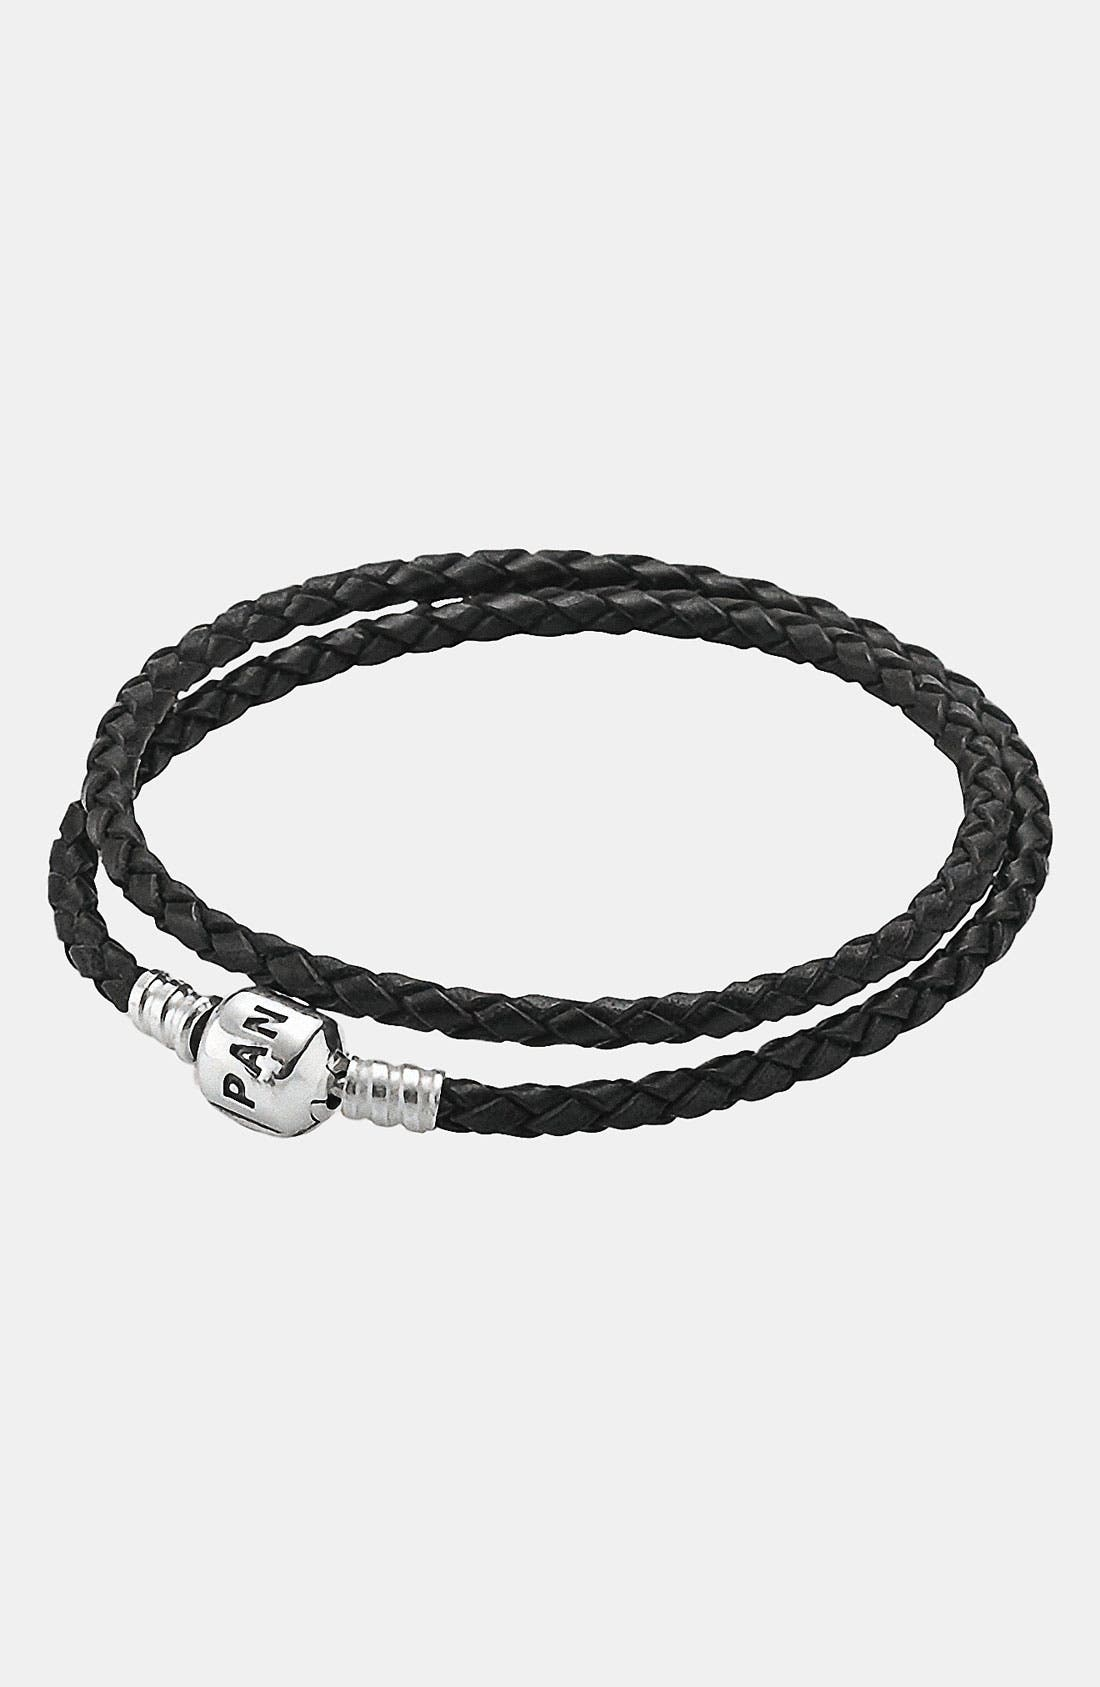 Main Image - PANDORA Leather Wrap Charm Bracelet